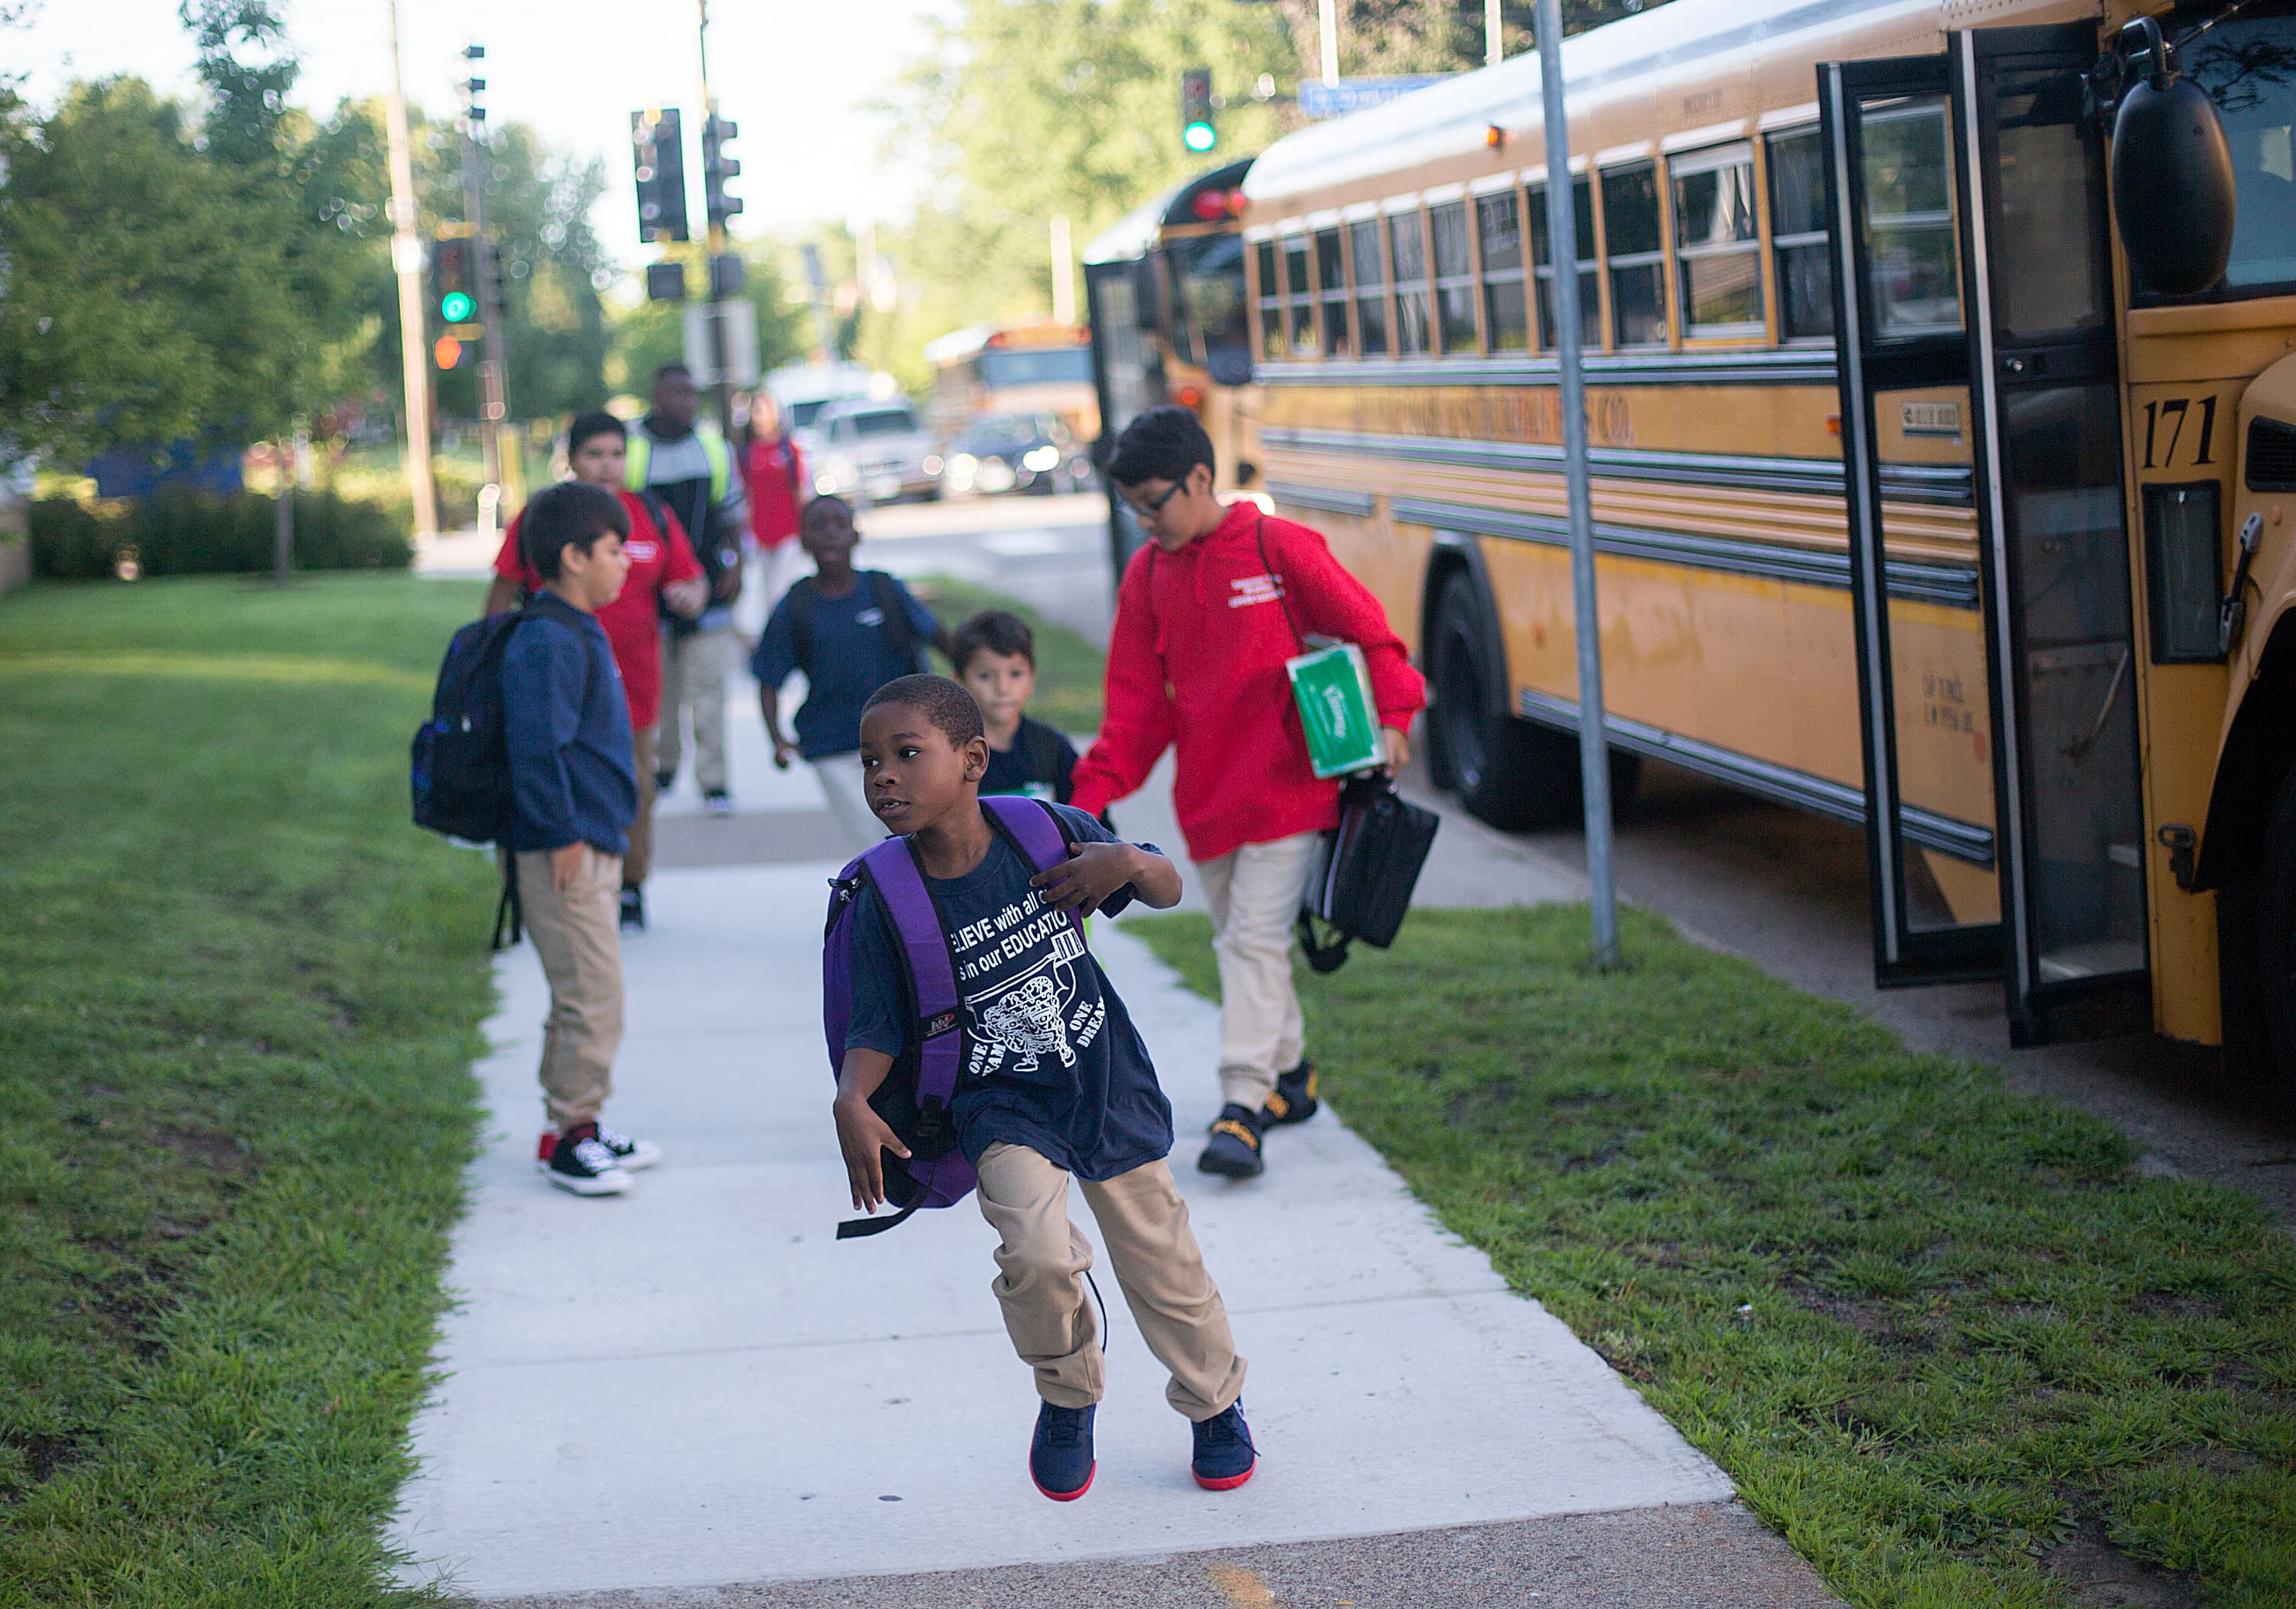 Child with backpack who just got off the bus